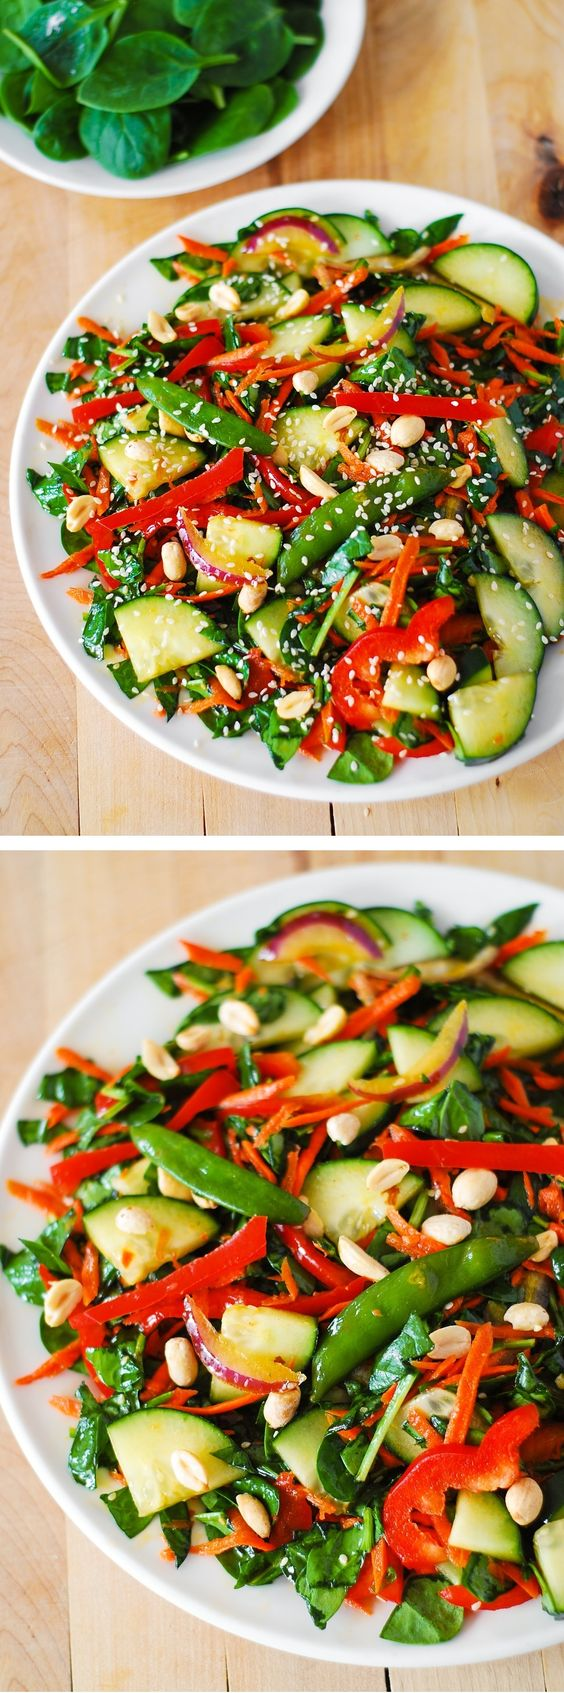 Asian salad with peanut dressing | Recipe | Crunchy Asian Salad, Asian ...